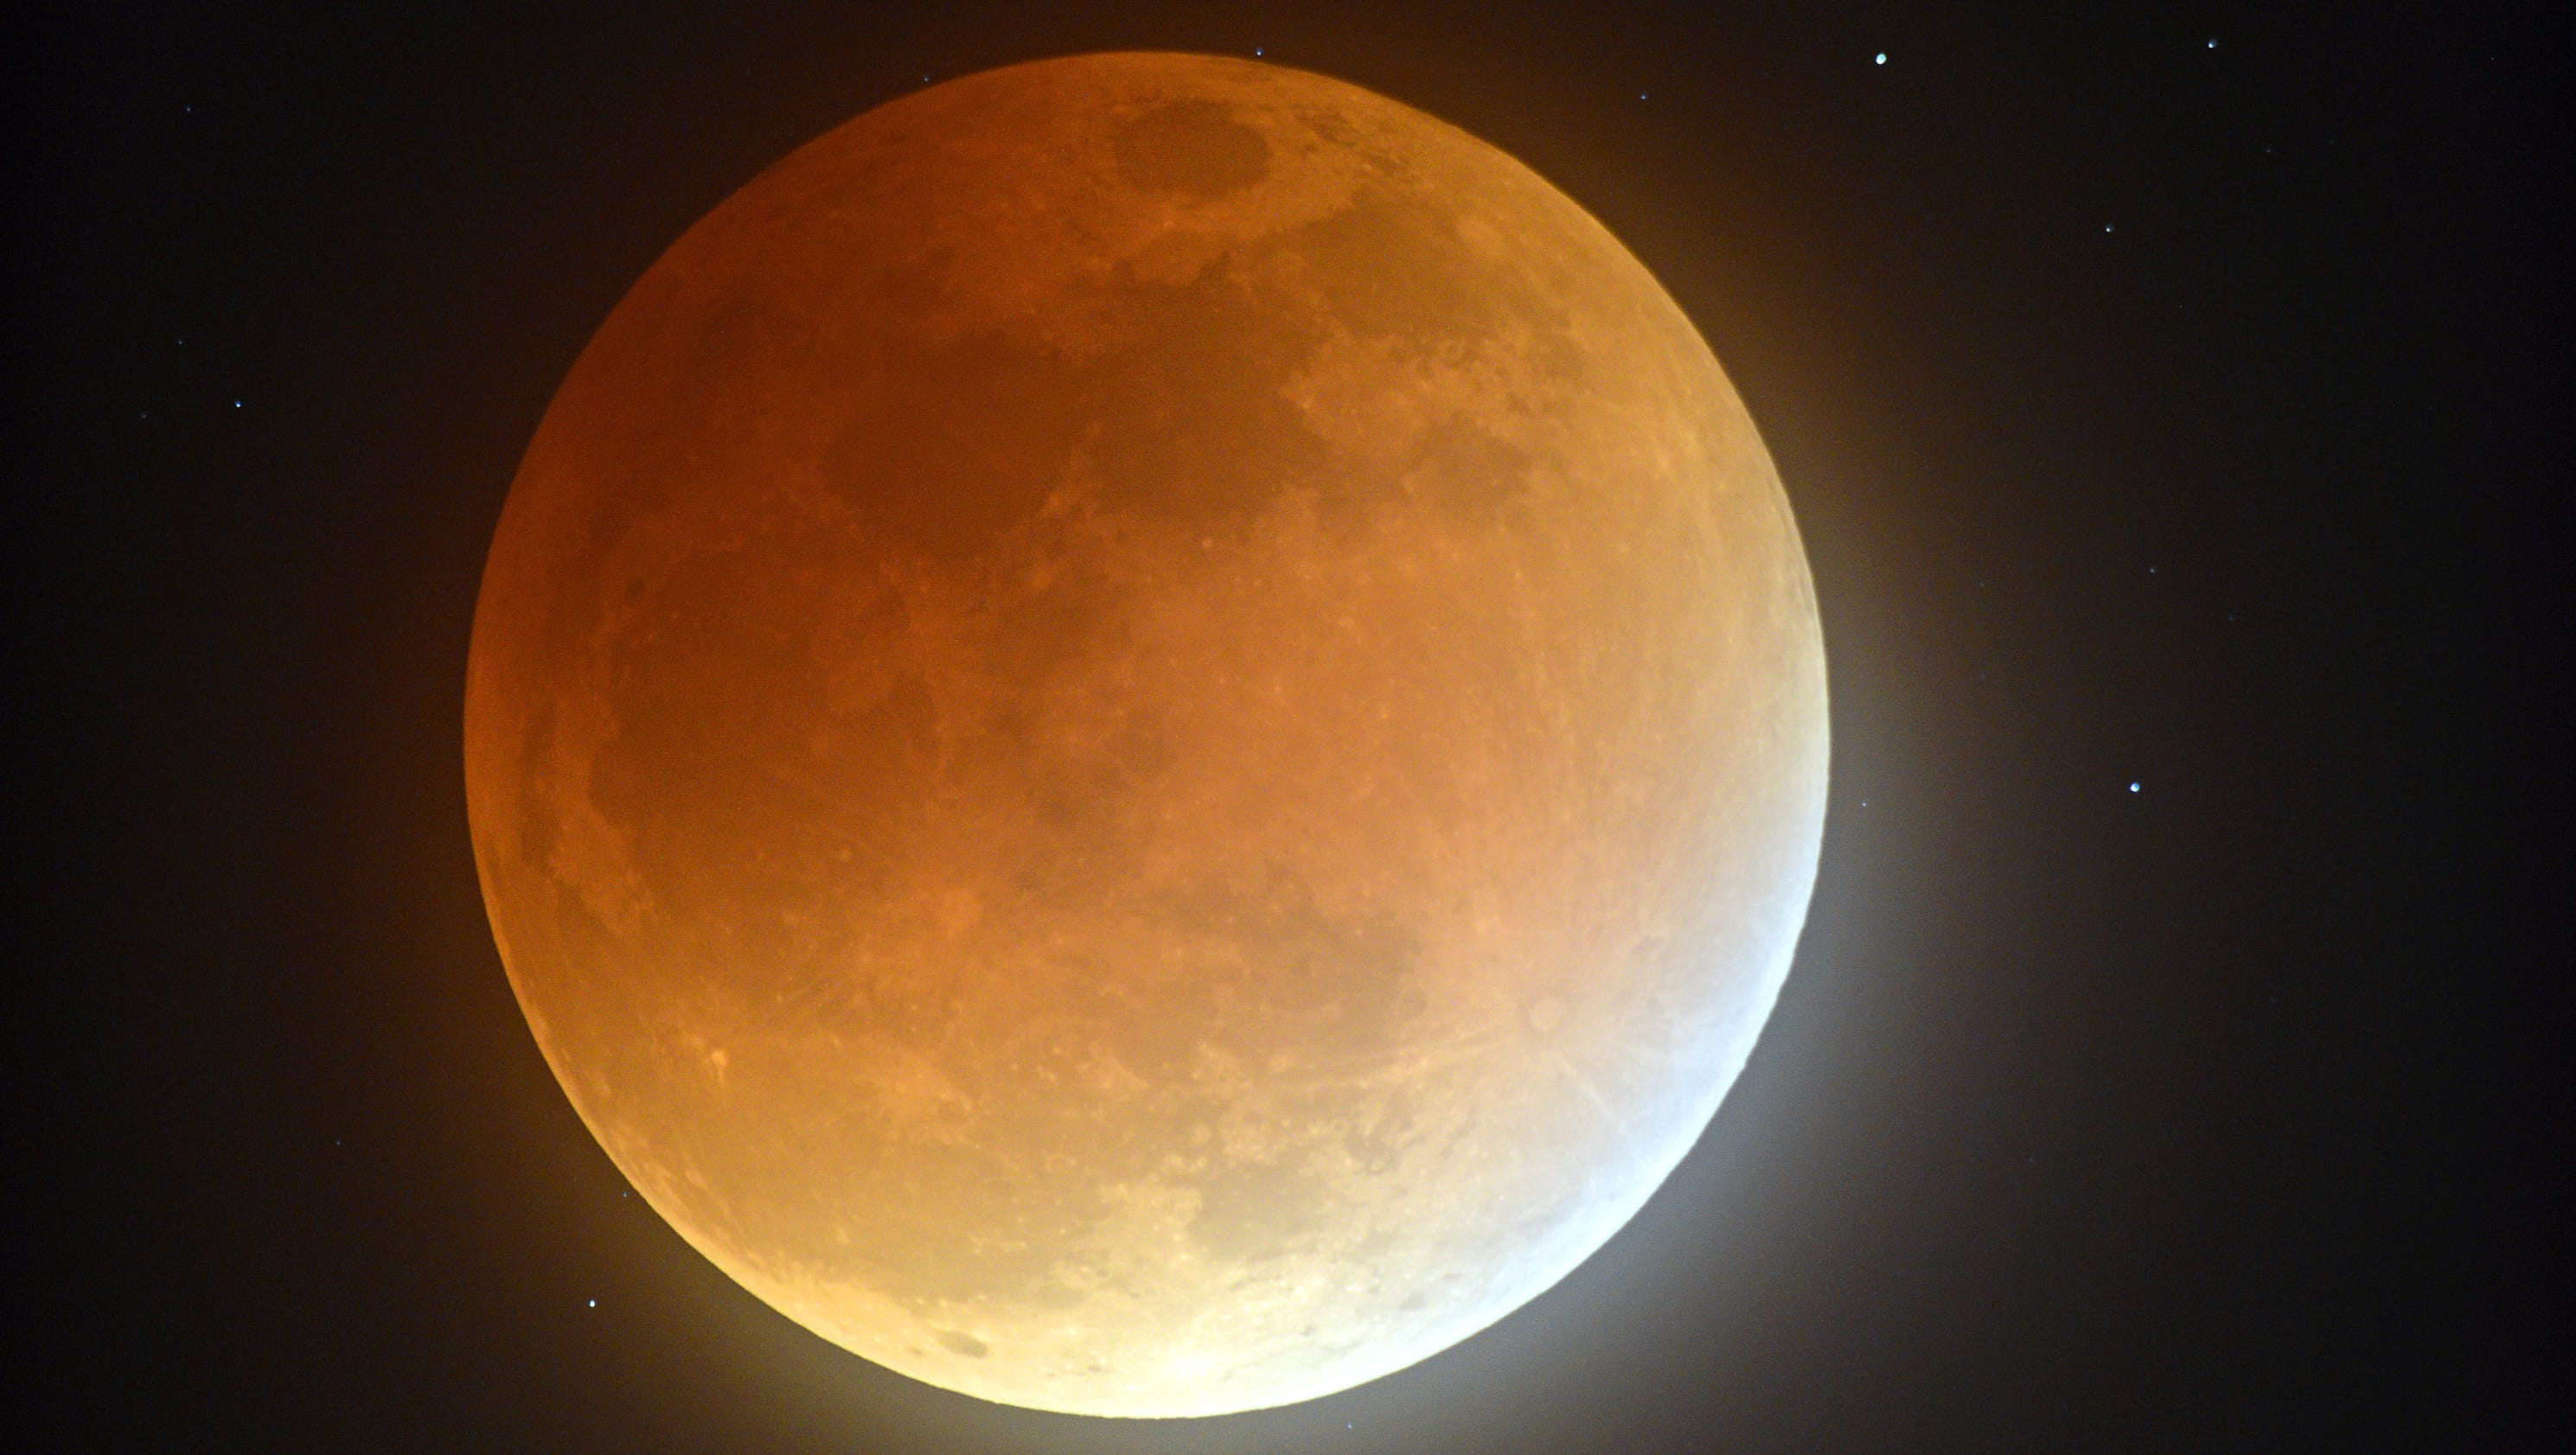 Triple treat: Supermoon, blue moon and lunar eclipse all coming to a sky near you next week